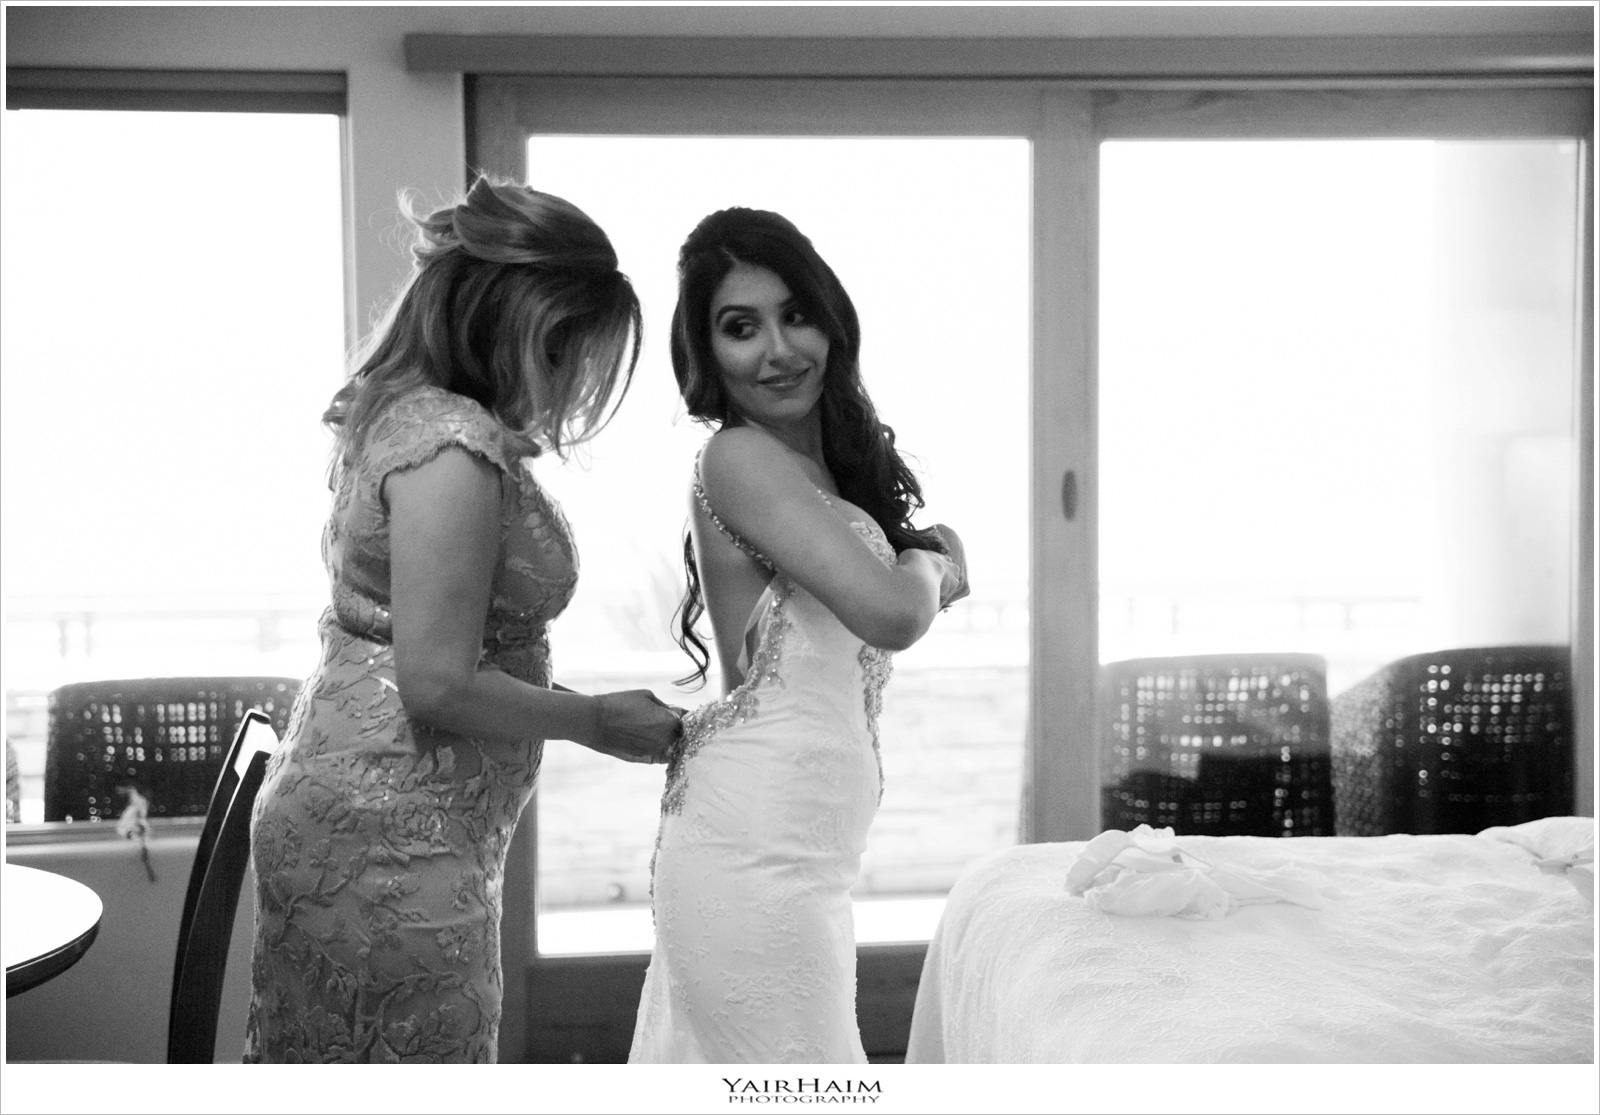 Destination-wedding-photographer-Yair-Haim-7